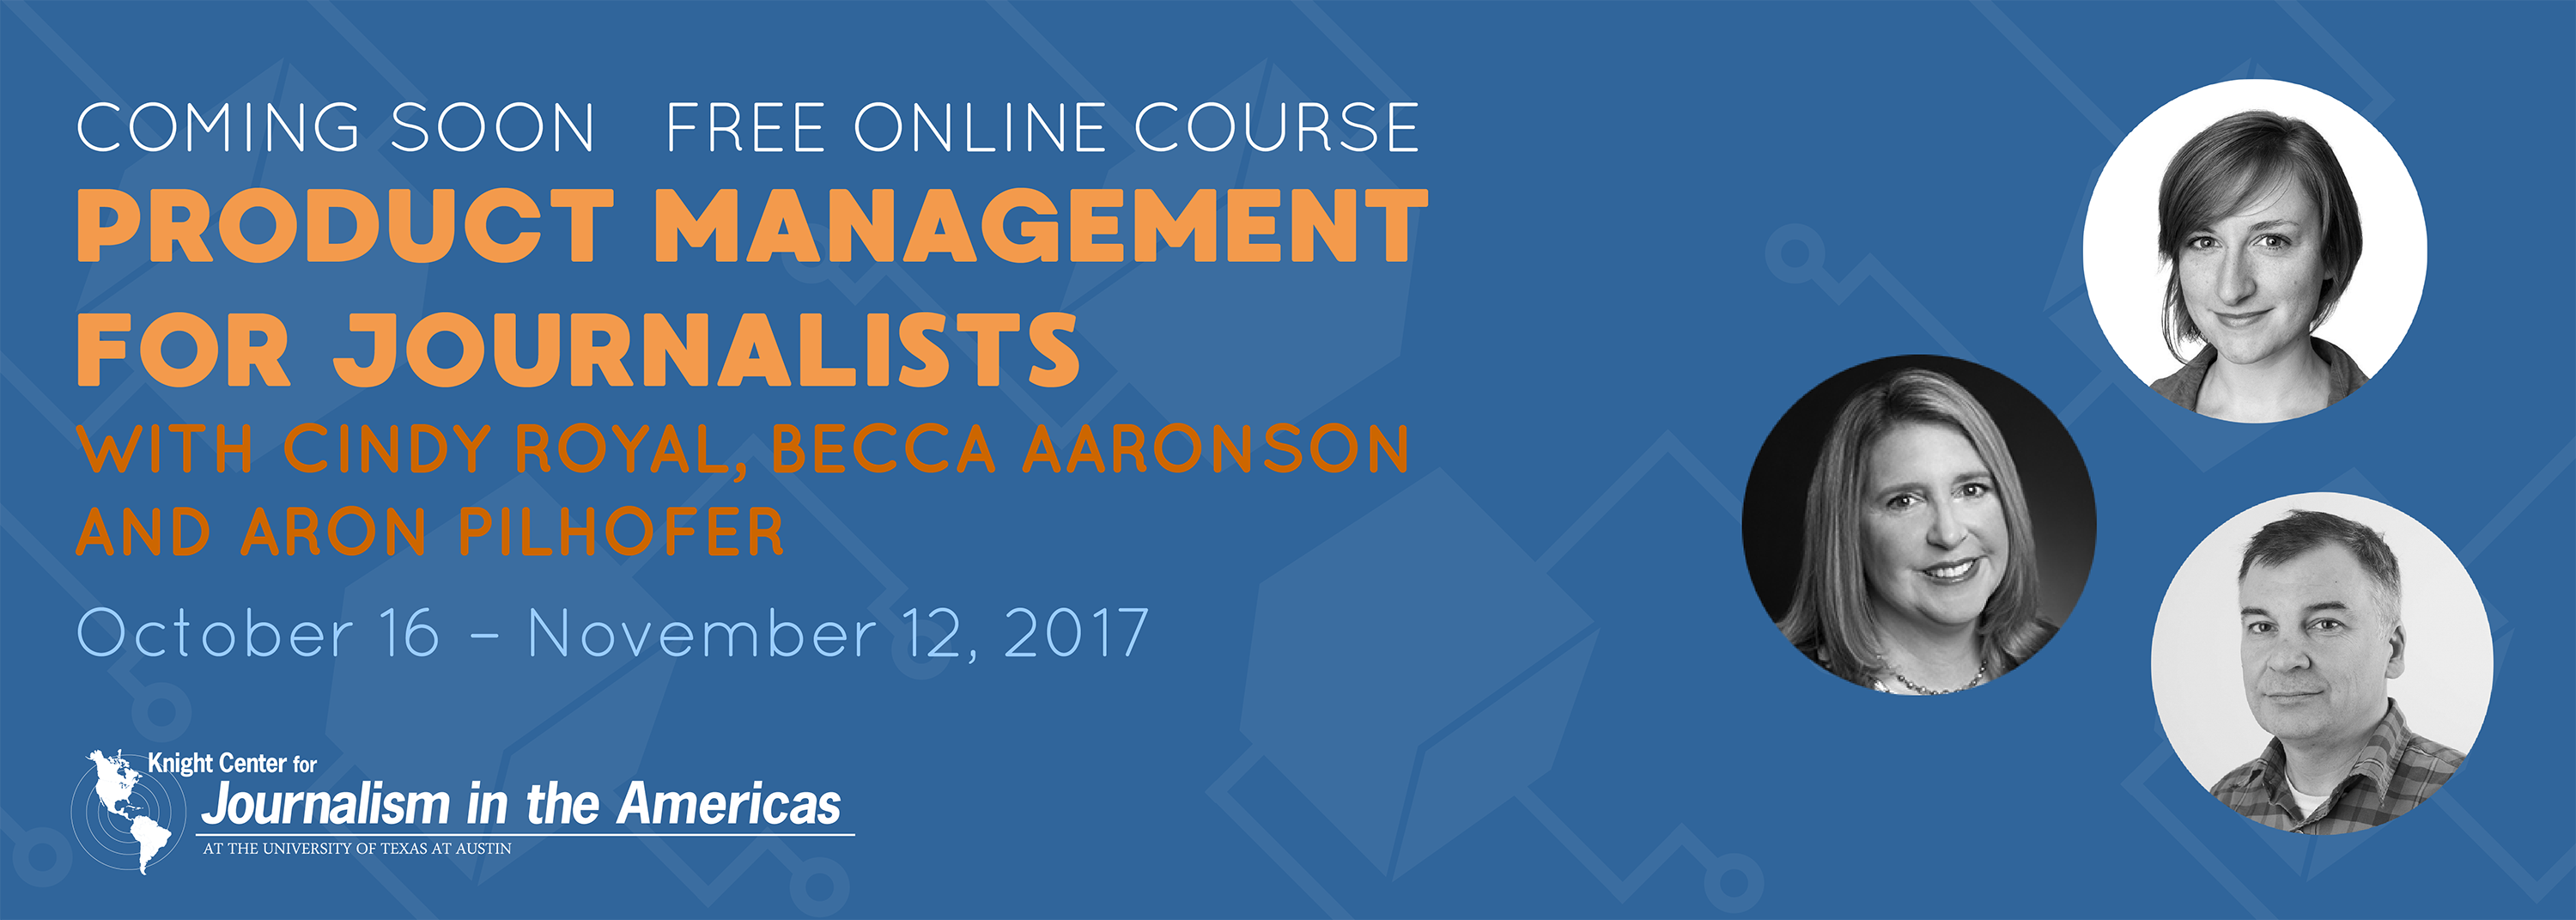 knightcenter.utexas.edu - Take the online course 'Product Management for Journalists' and learn about a new, in demand role in newsrooms